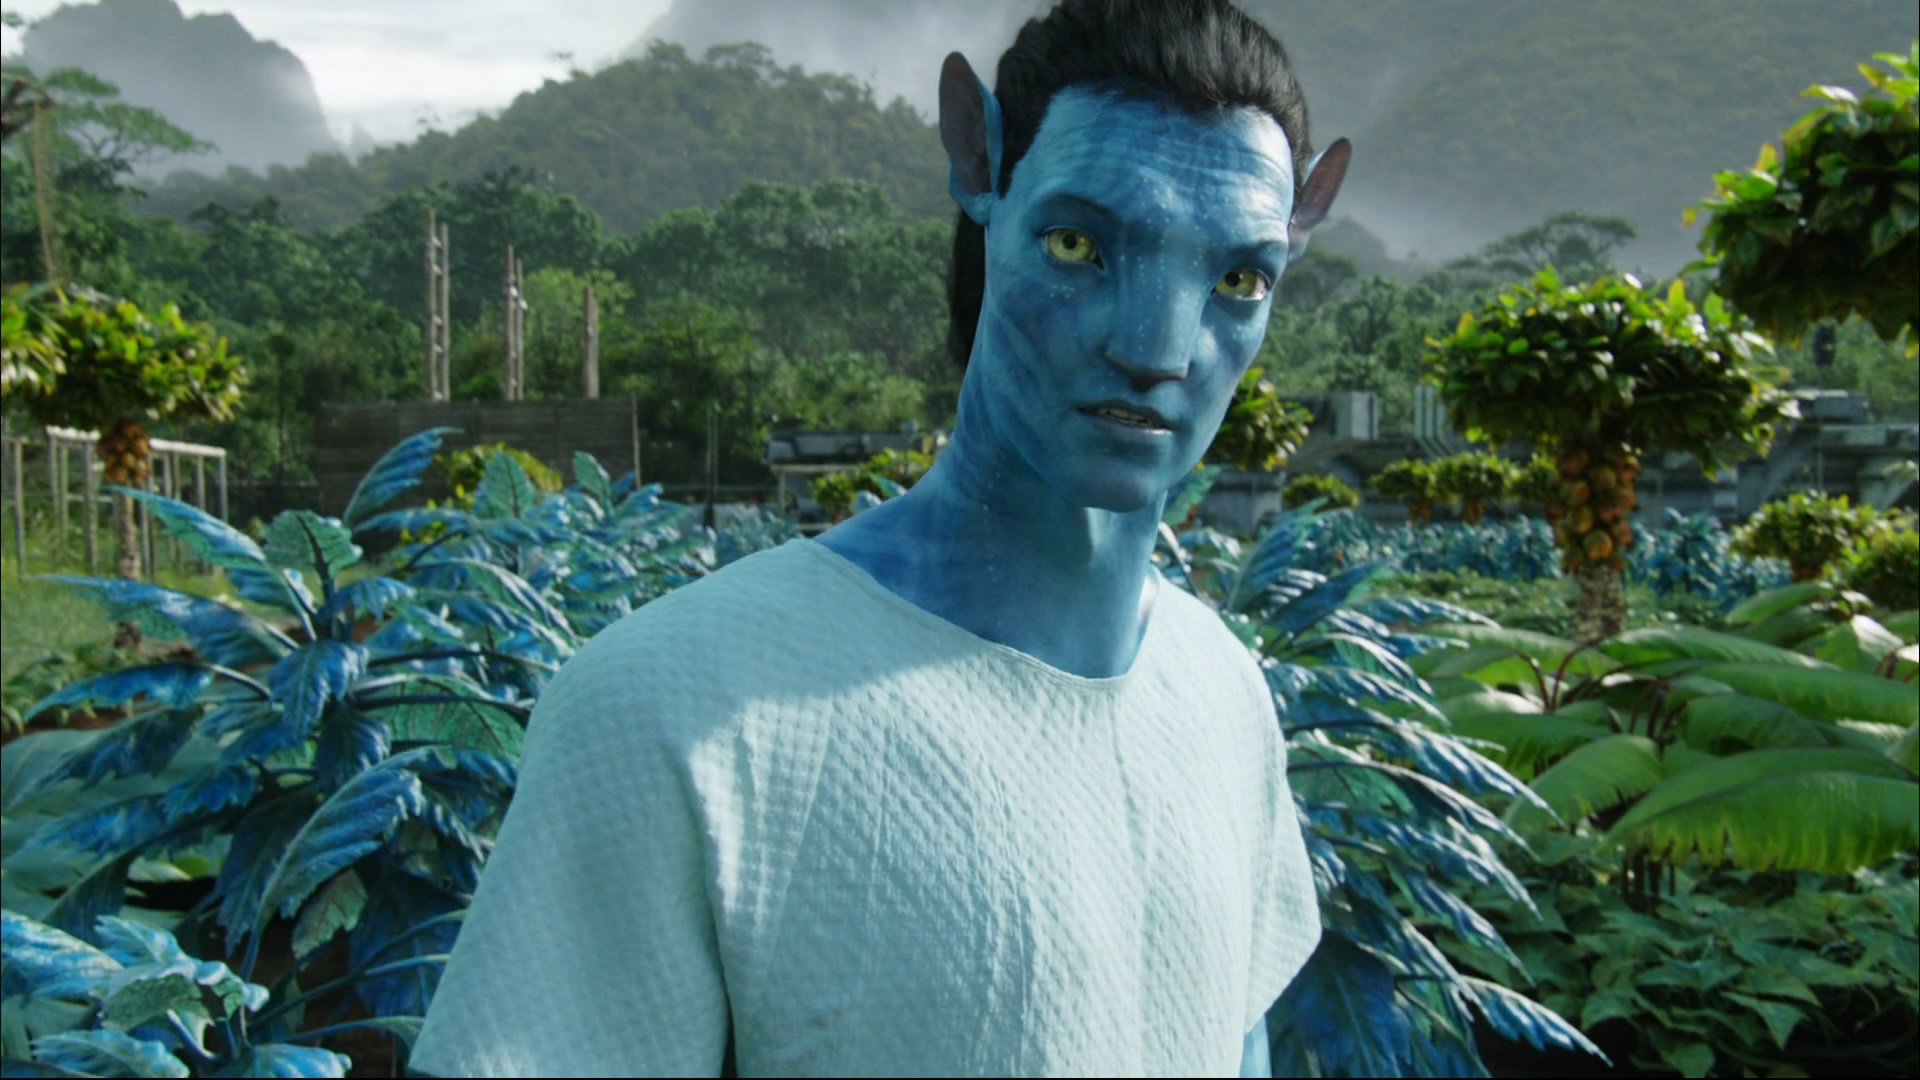 Free Download Avatar Wallpaper Id73249 Full Hd 1080p For Computer